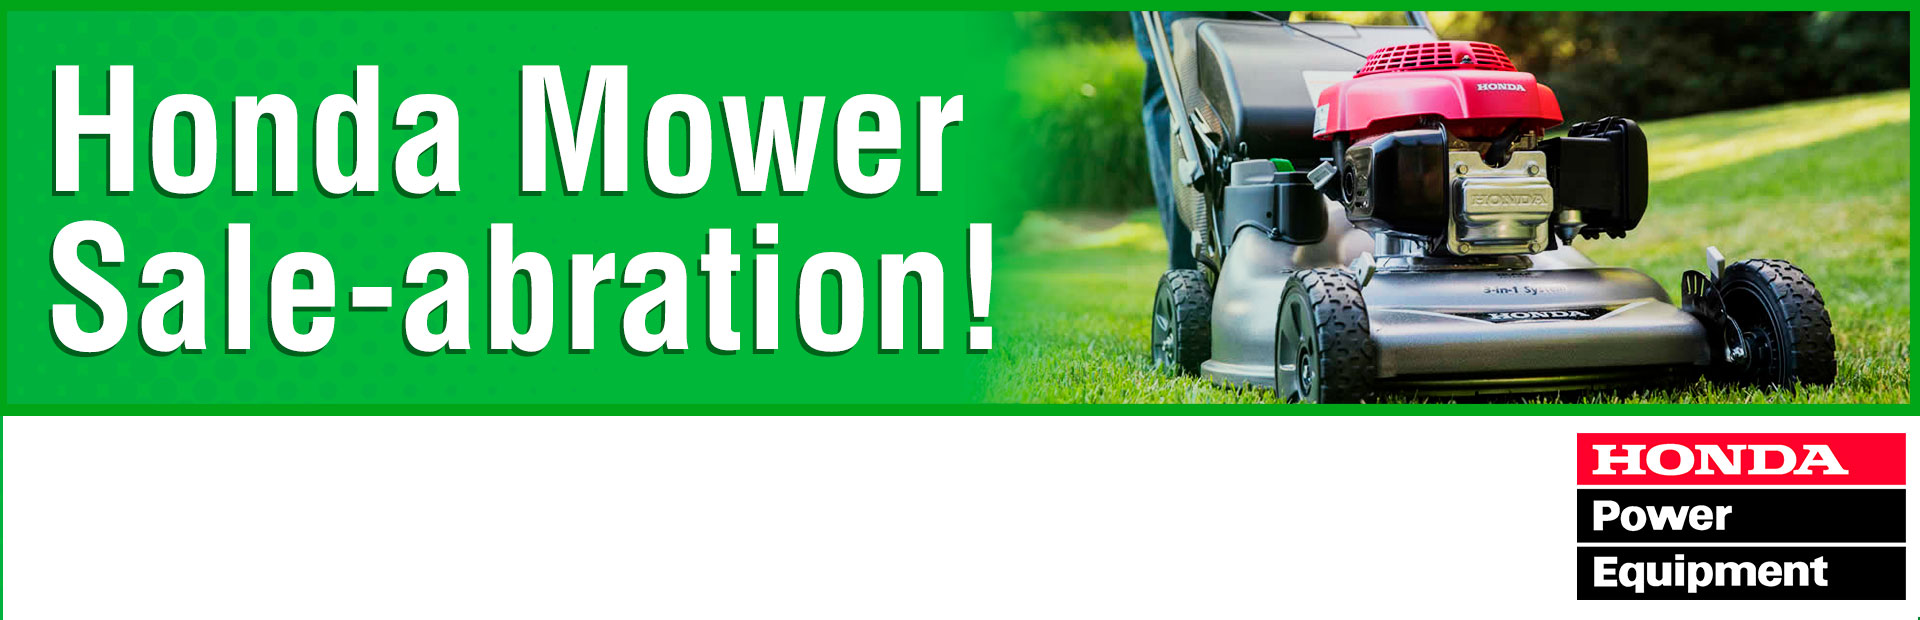 Honda Power Equipment: Mower Sale-abration!